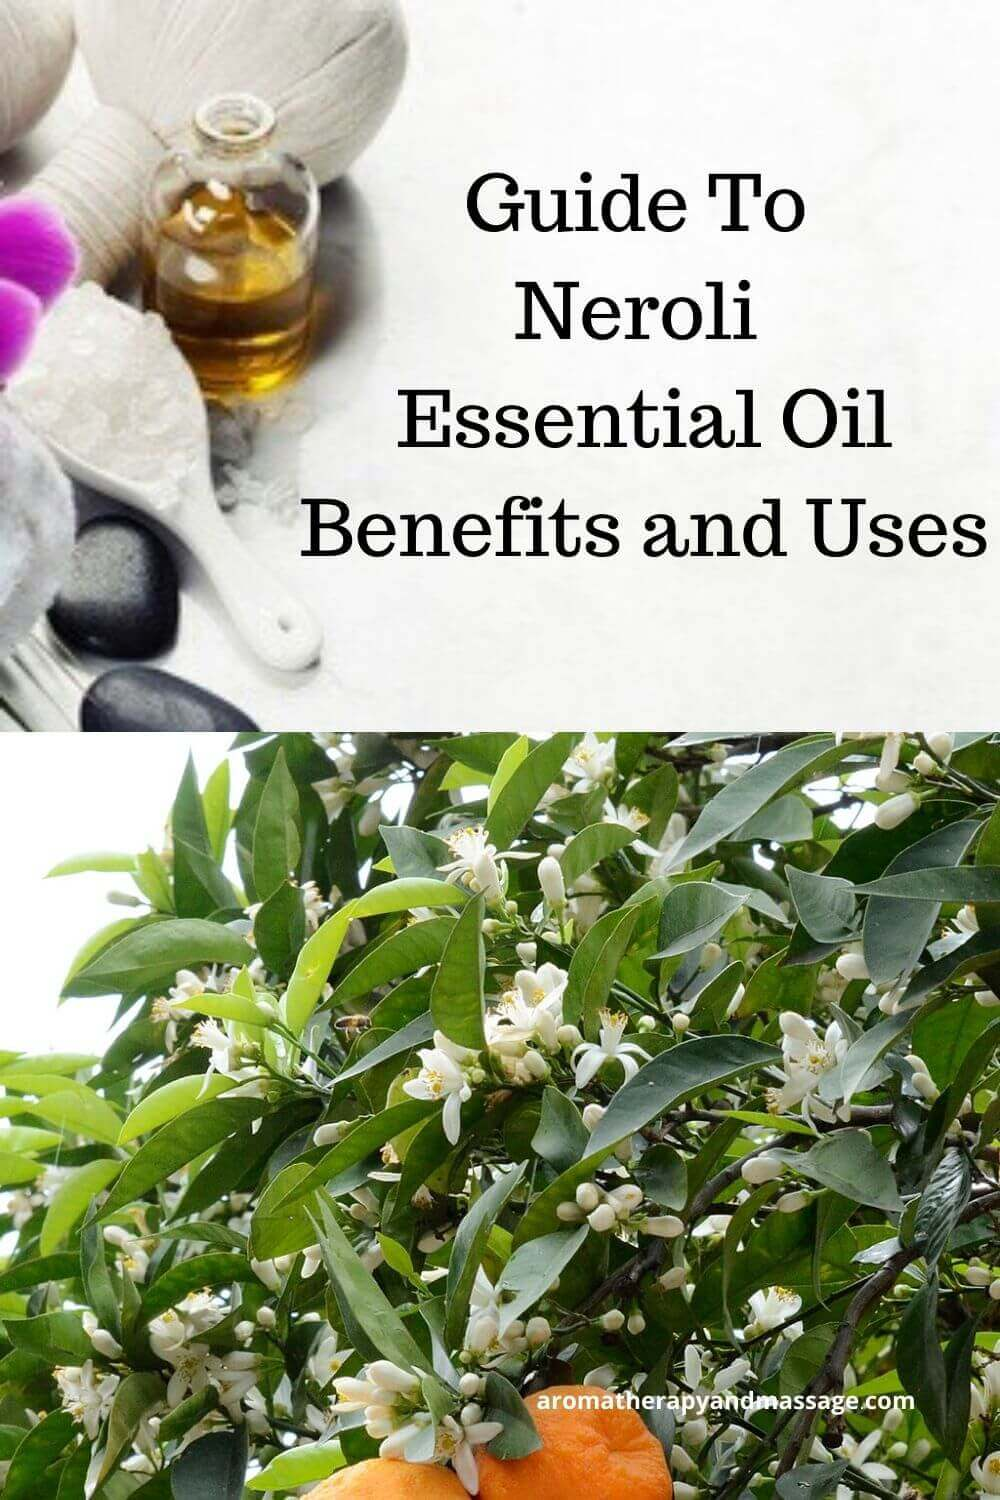 Guide To Neroli Essential Oil and Its Benefits and Uses In Aromatherapy